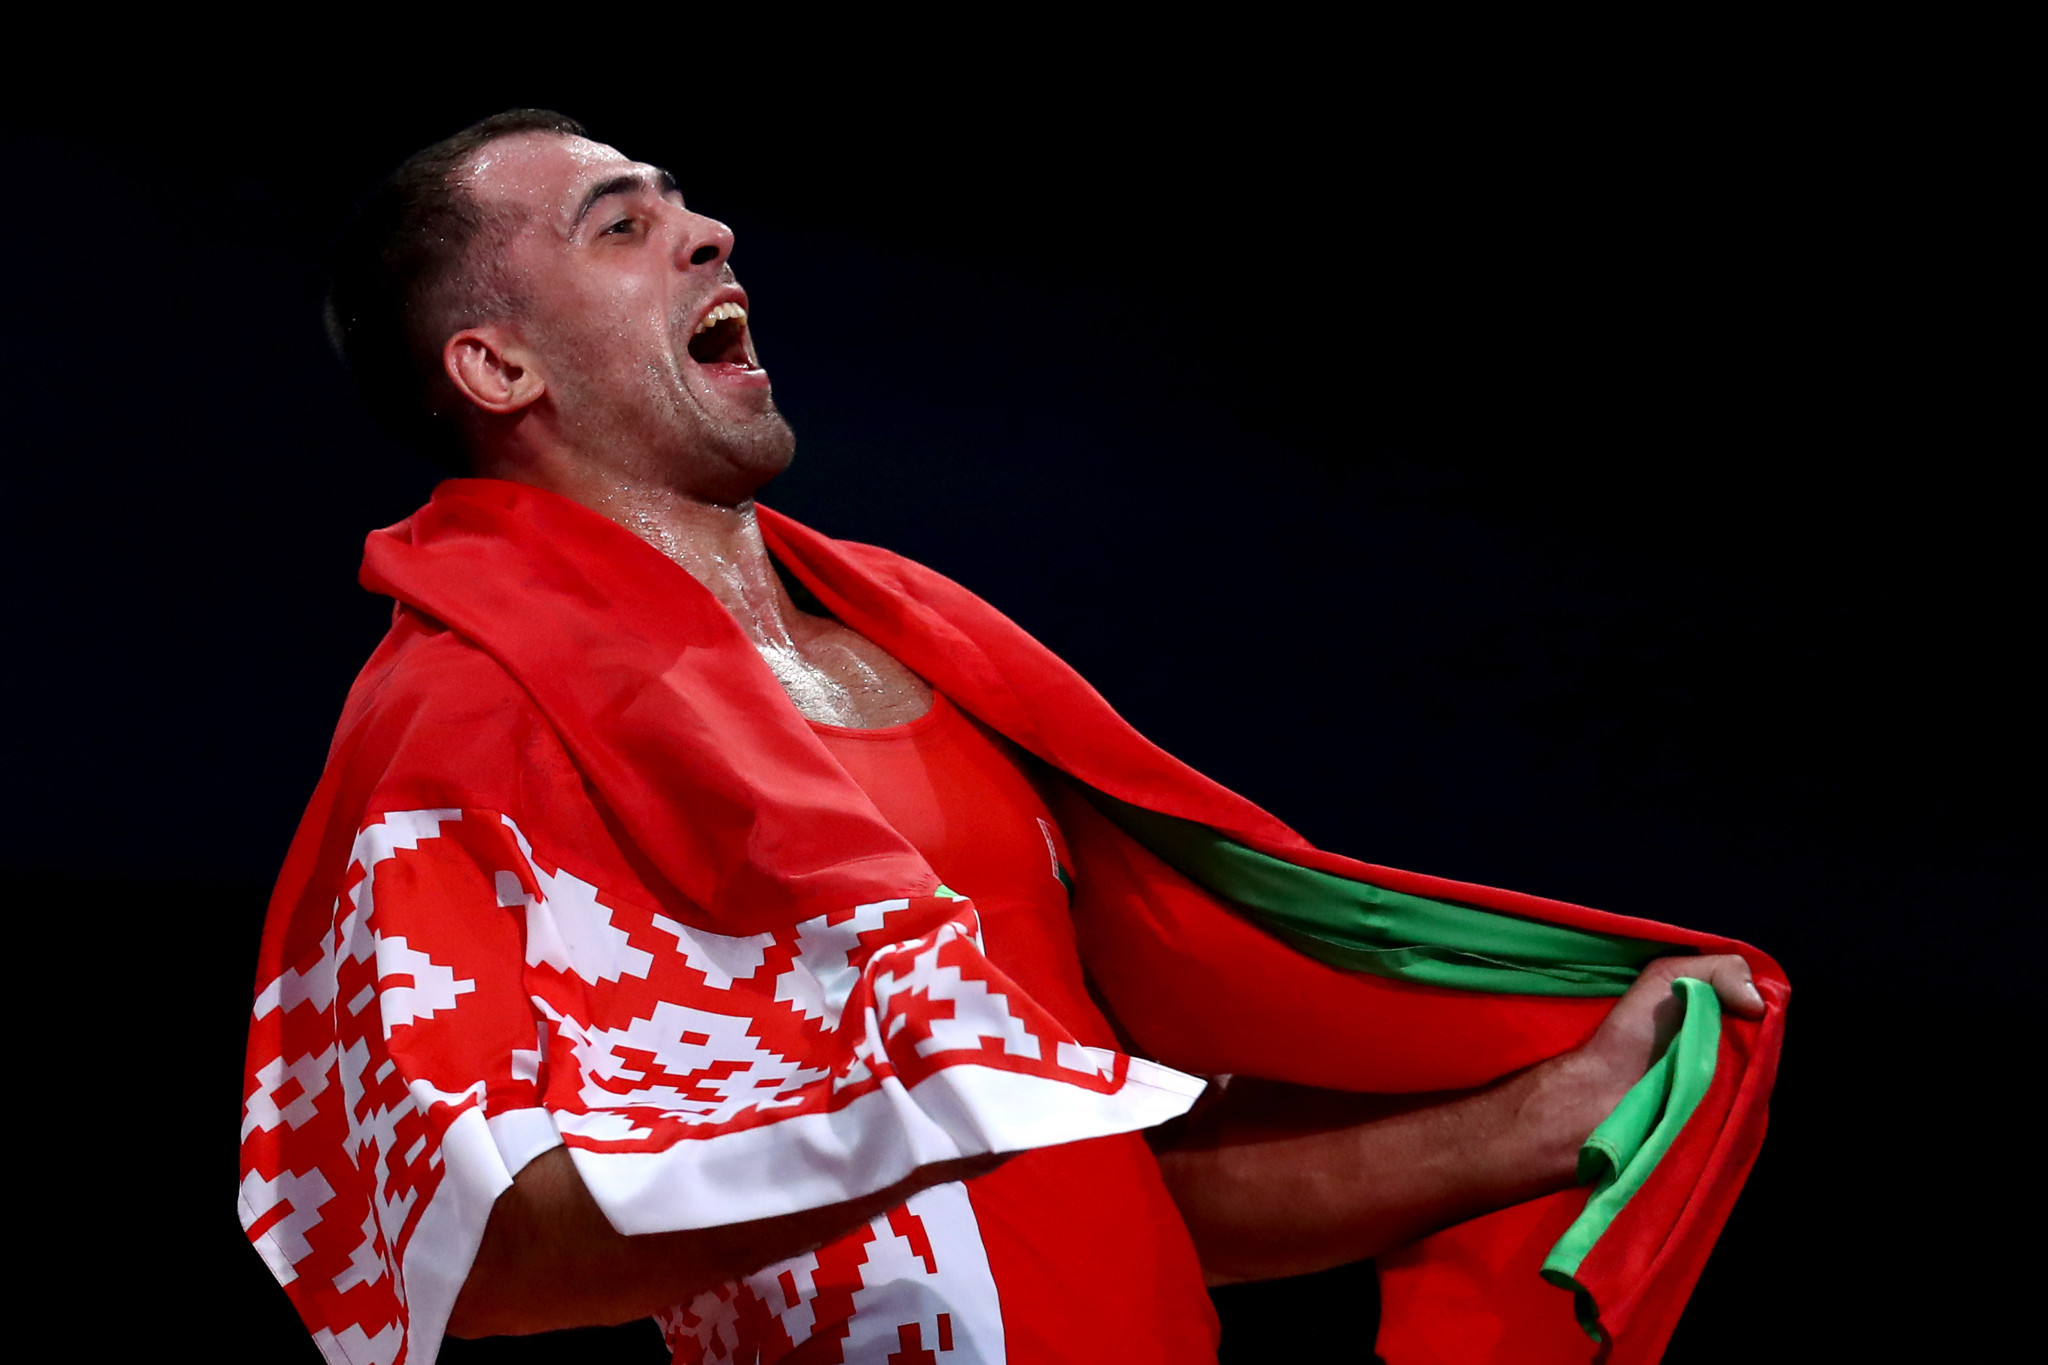 Belarusian wrestler stripped of European Games gold medal for doping